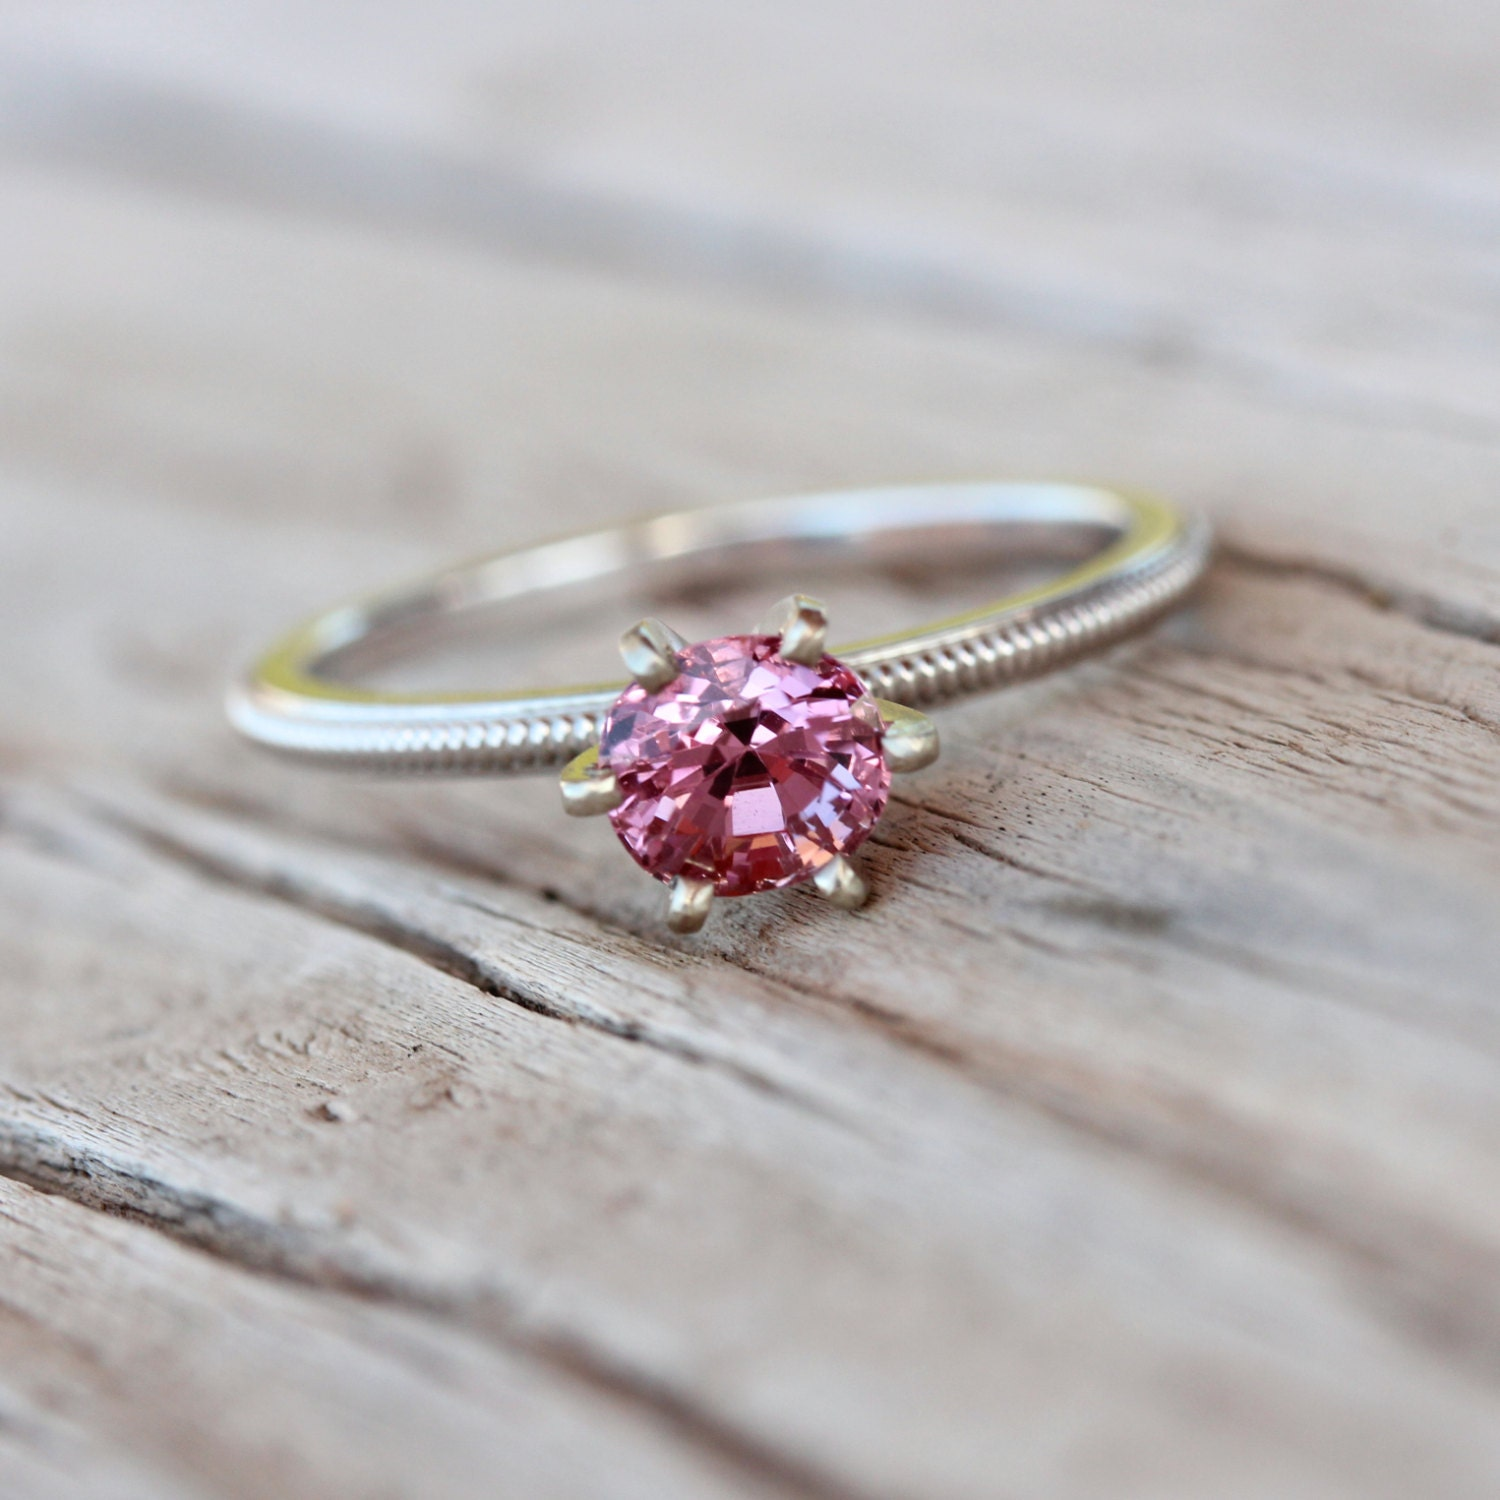 free watches gold product white shipping blush ring rose carat jewelry fashion floral round with today engagement halo rings overstock morganite in diamond natural